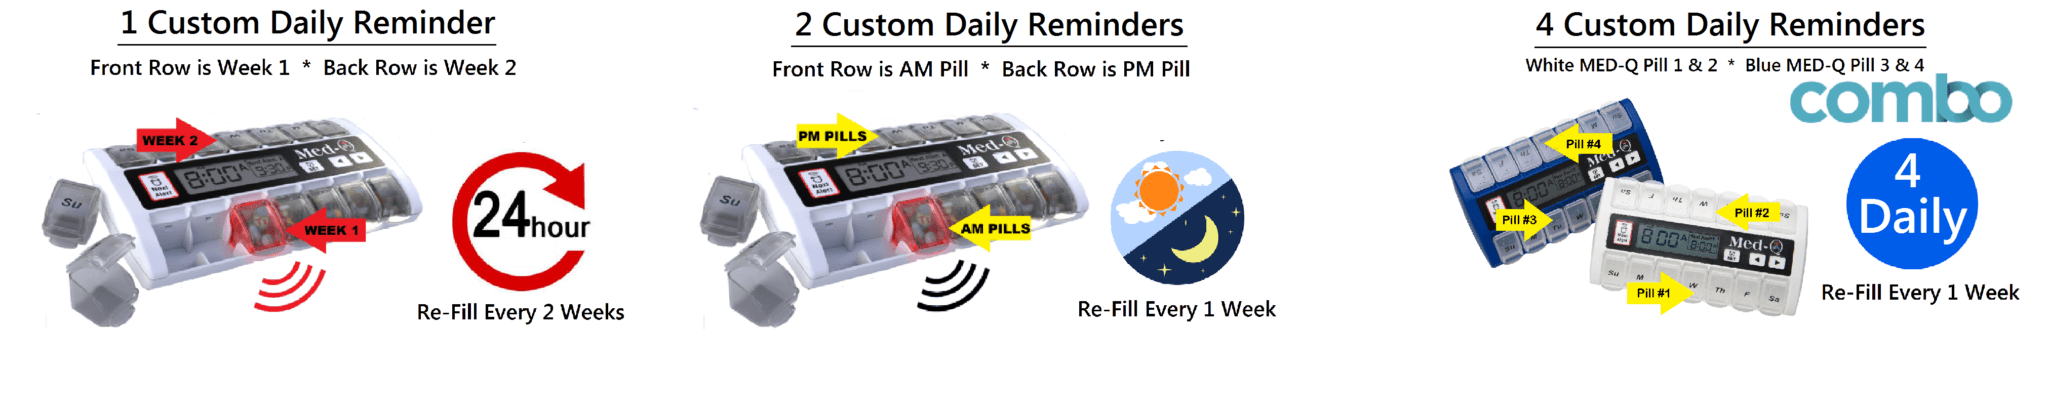 best medication reminder with alarm and timer for dementia